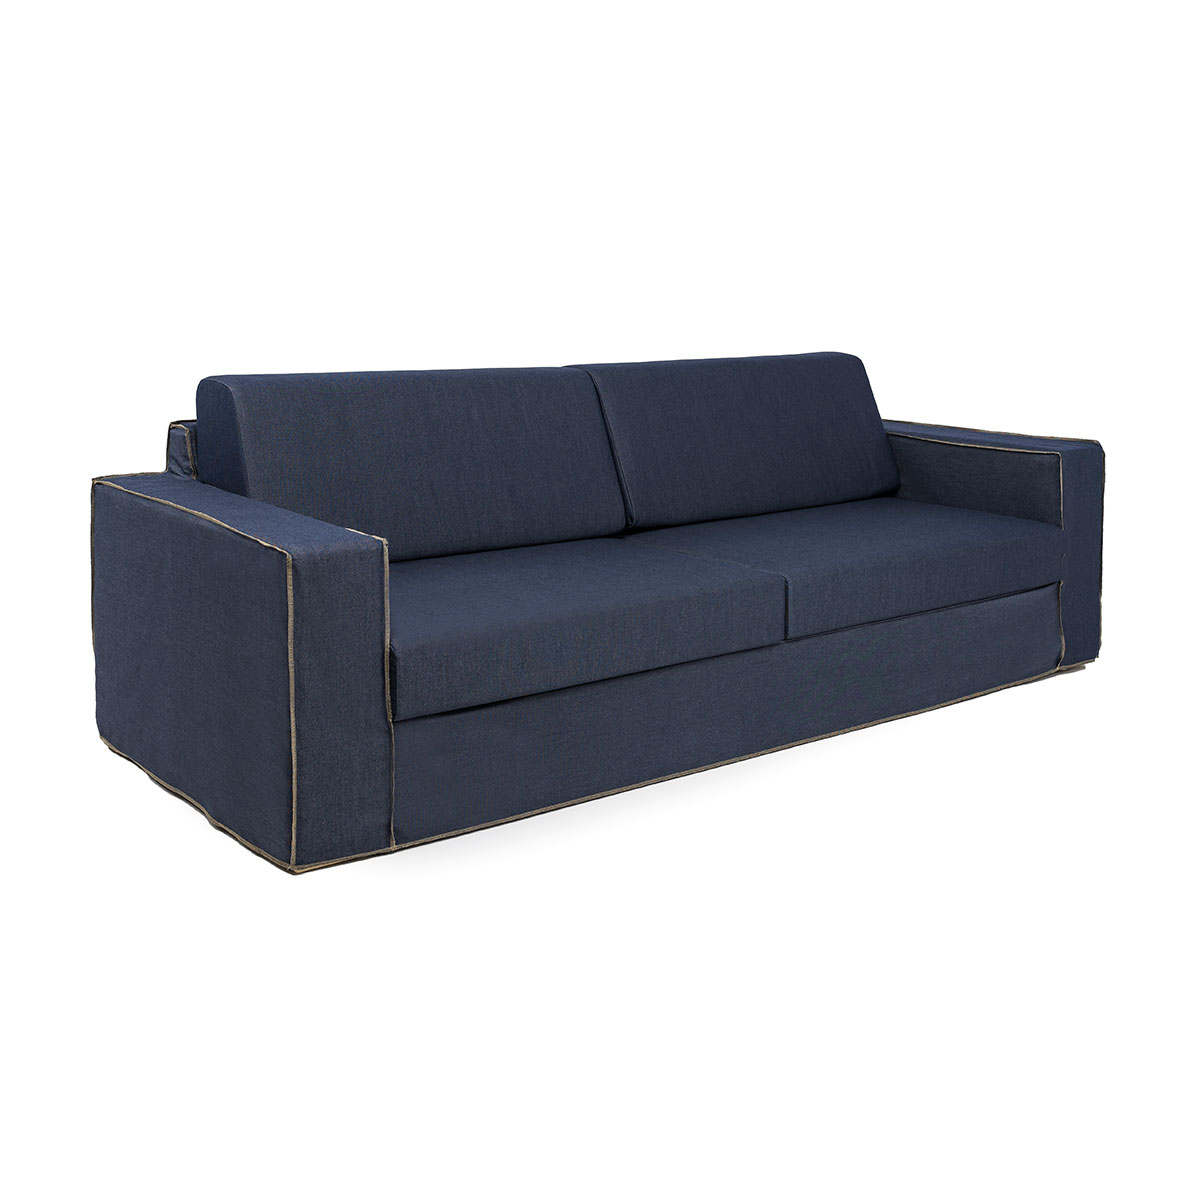 External coverage for 3-seated sofa Berenice Braid